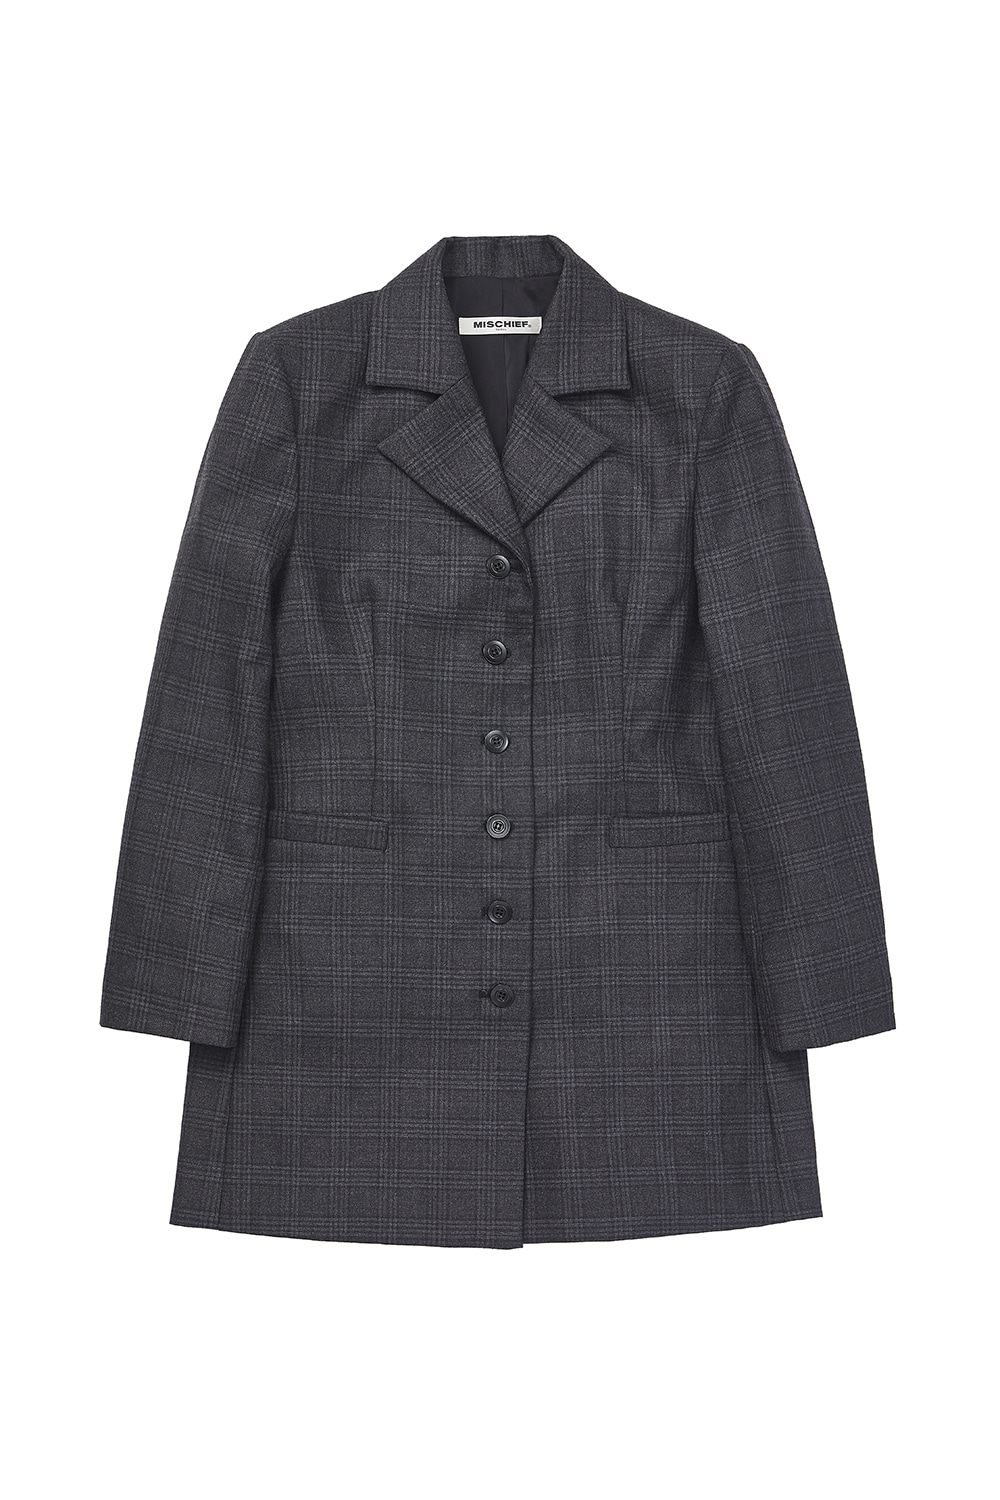 LONG SUIT JACKET_tartan black/gray